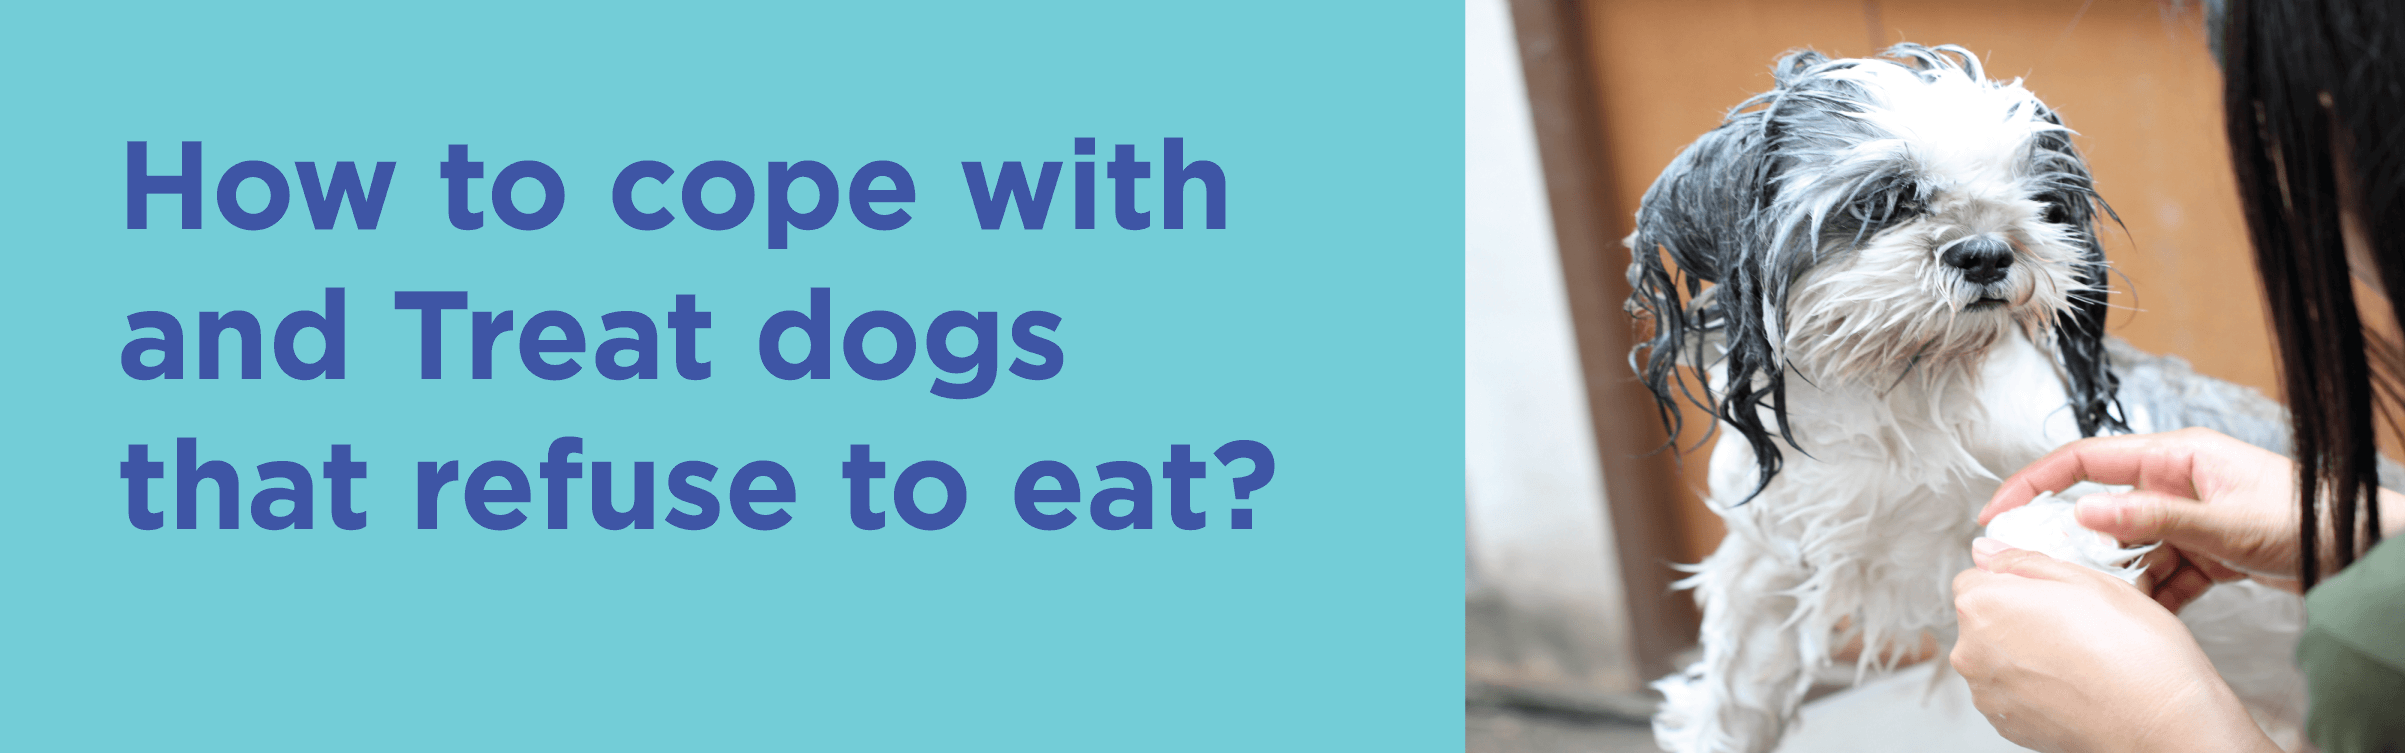 How to cope with and Treat dogs that refuse to eat?